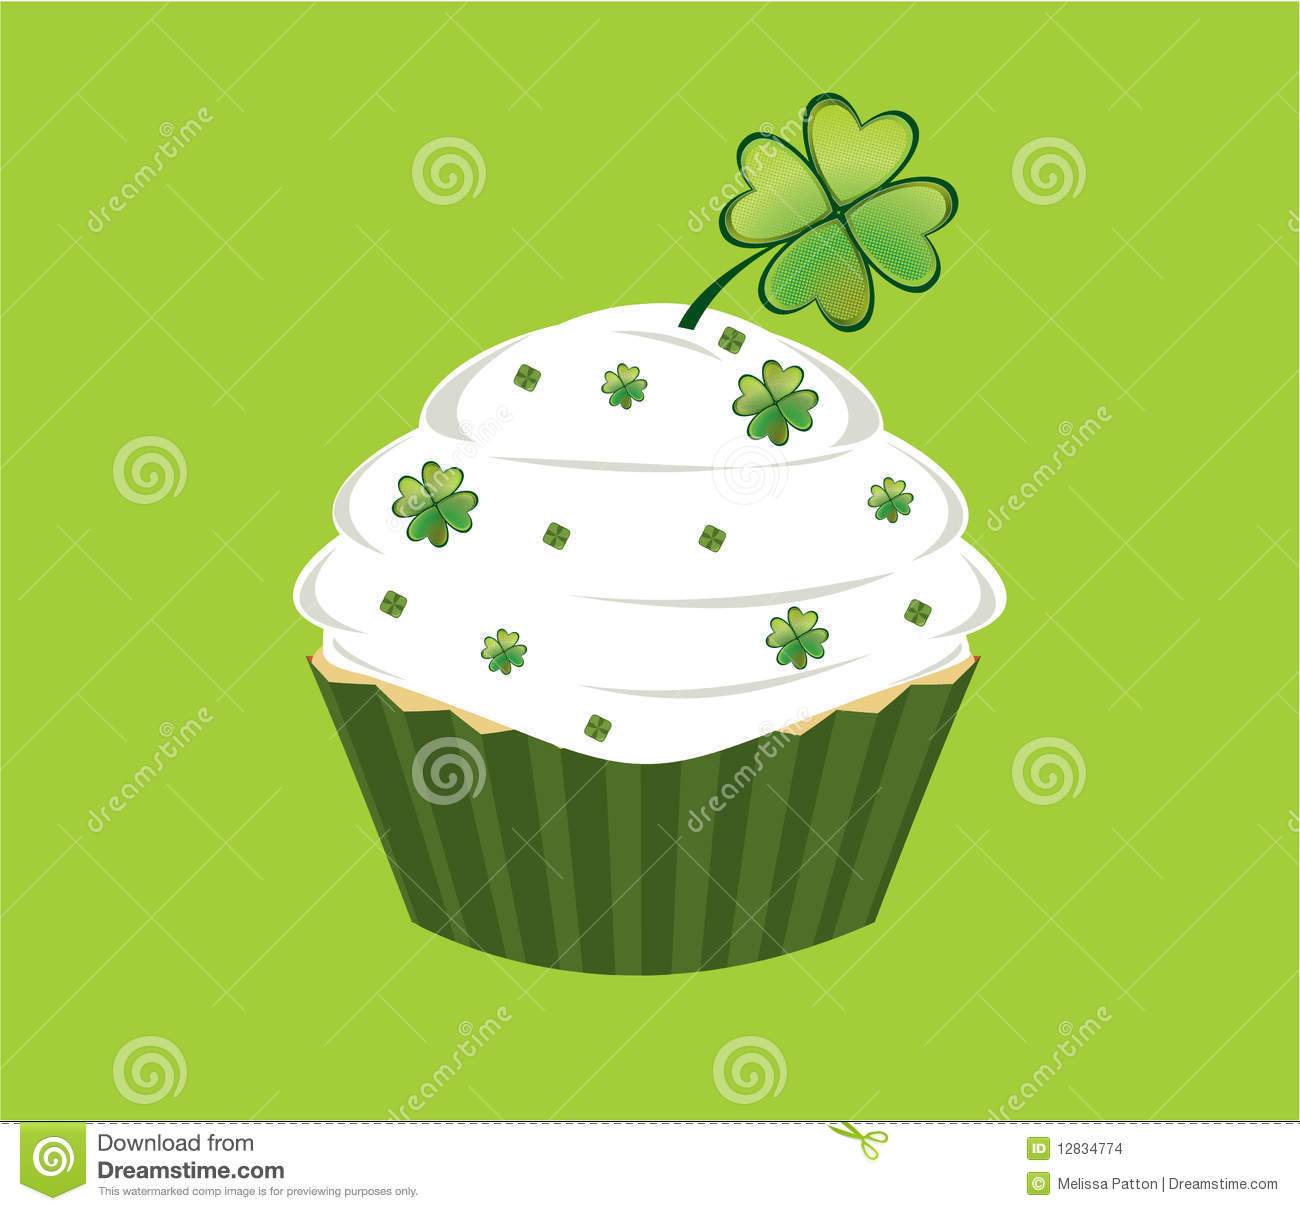 Cupcake decorated with green diamond shapes and shamrocks on white ...